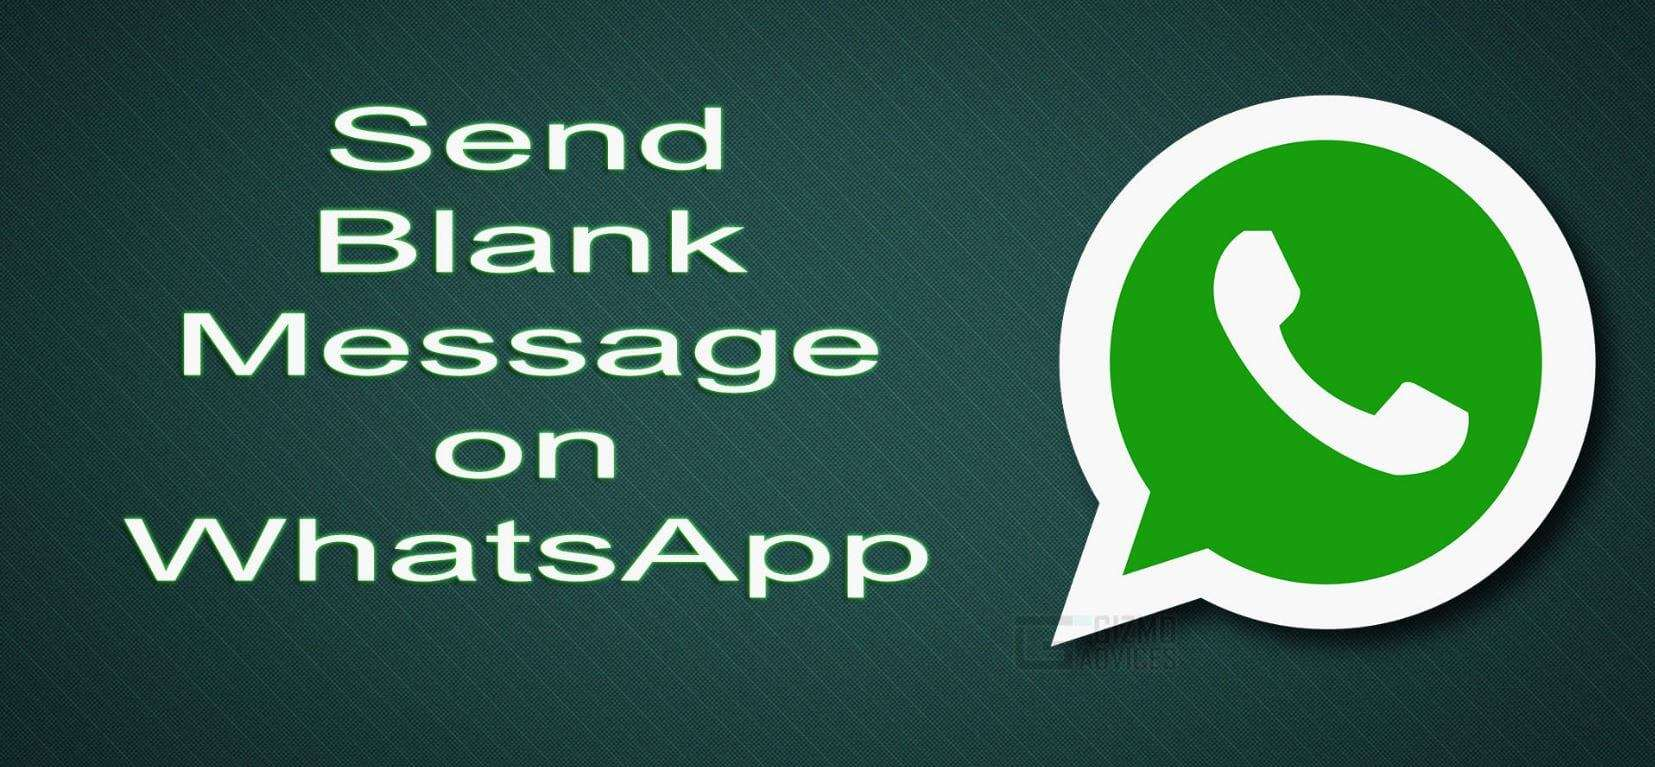 How to Send Blank / Empty Message on WhatsApp Messenger